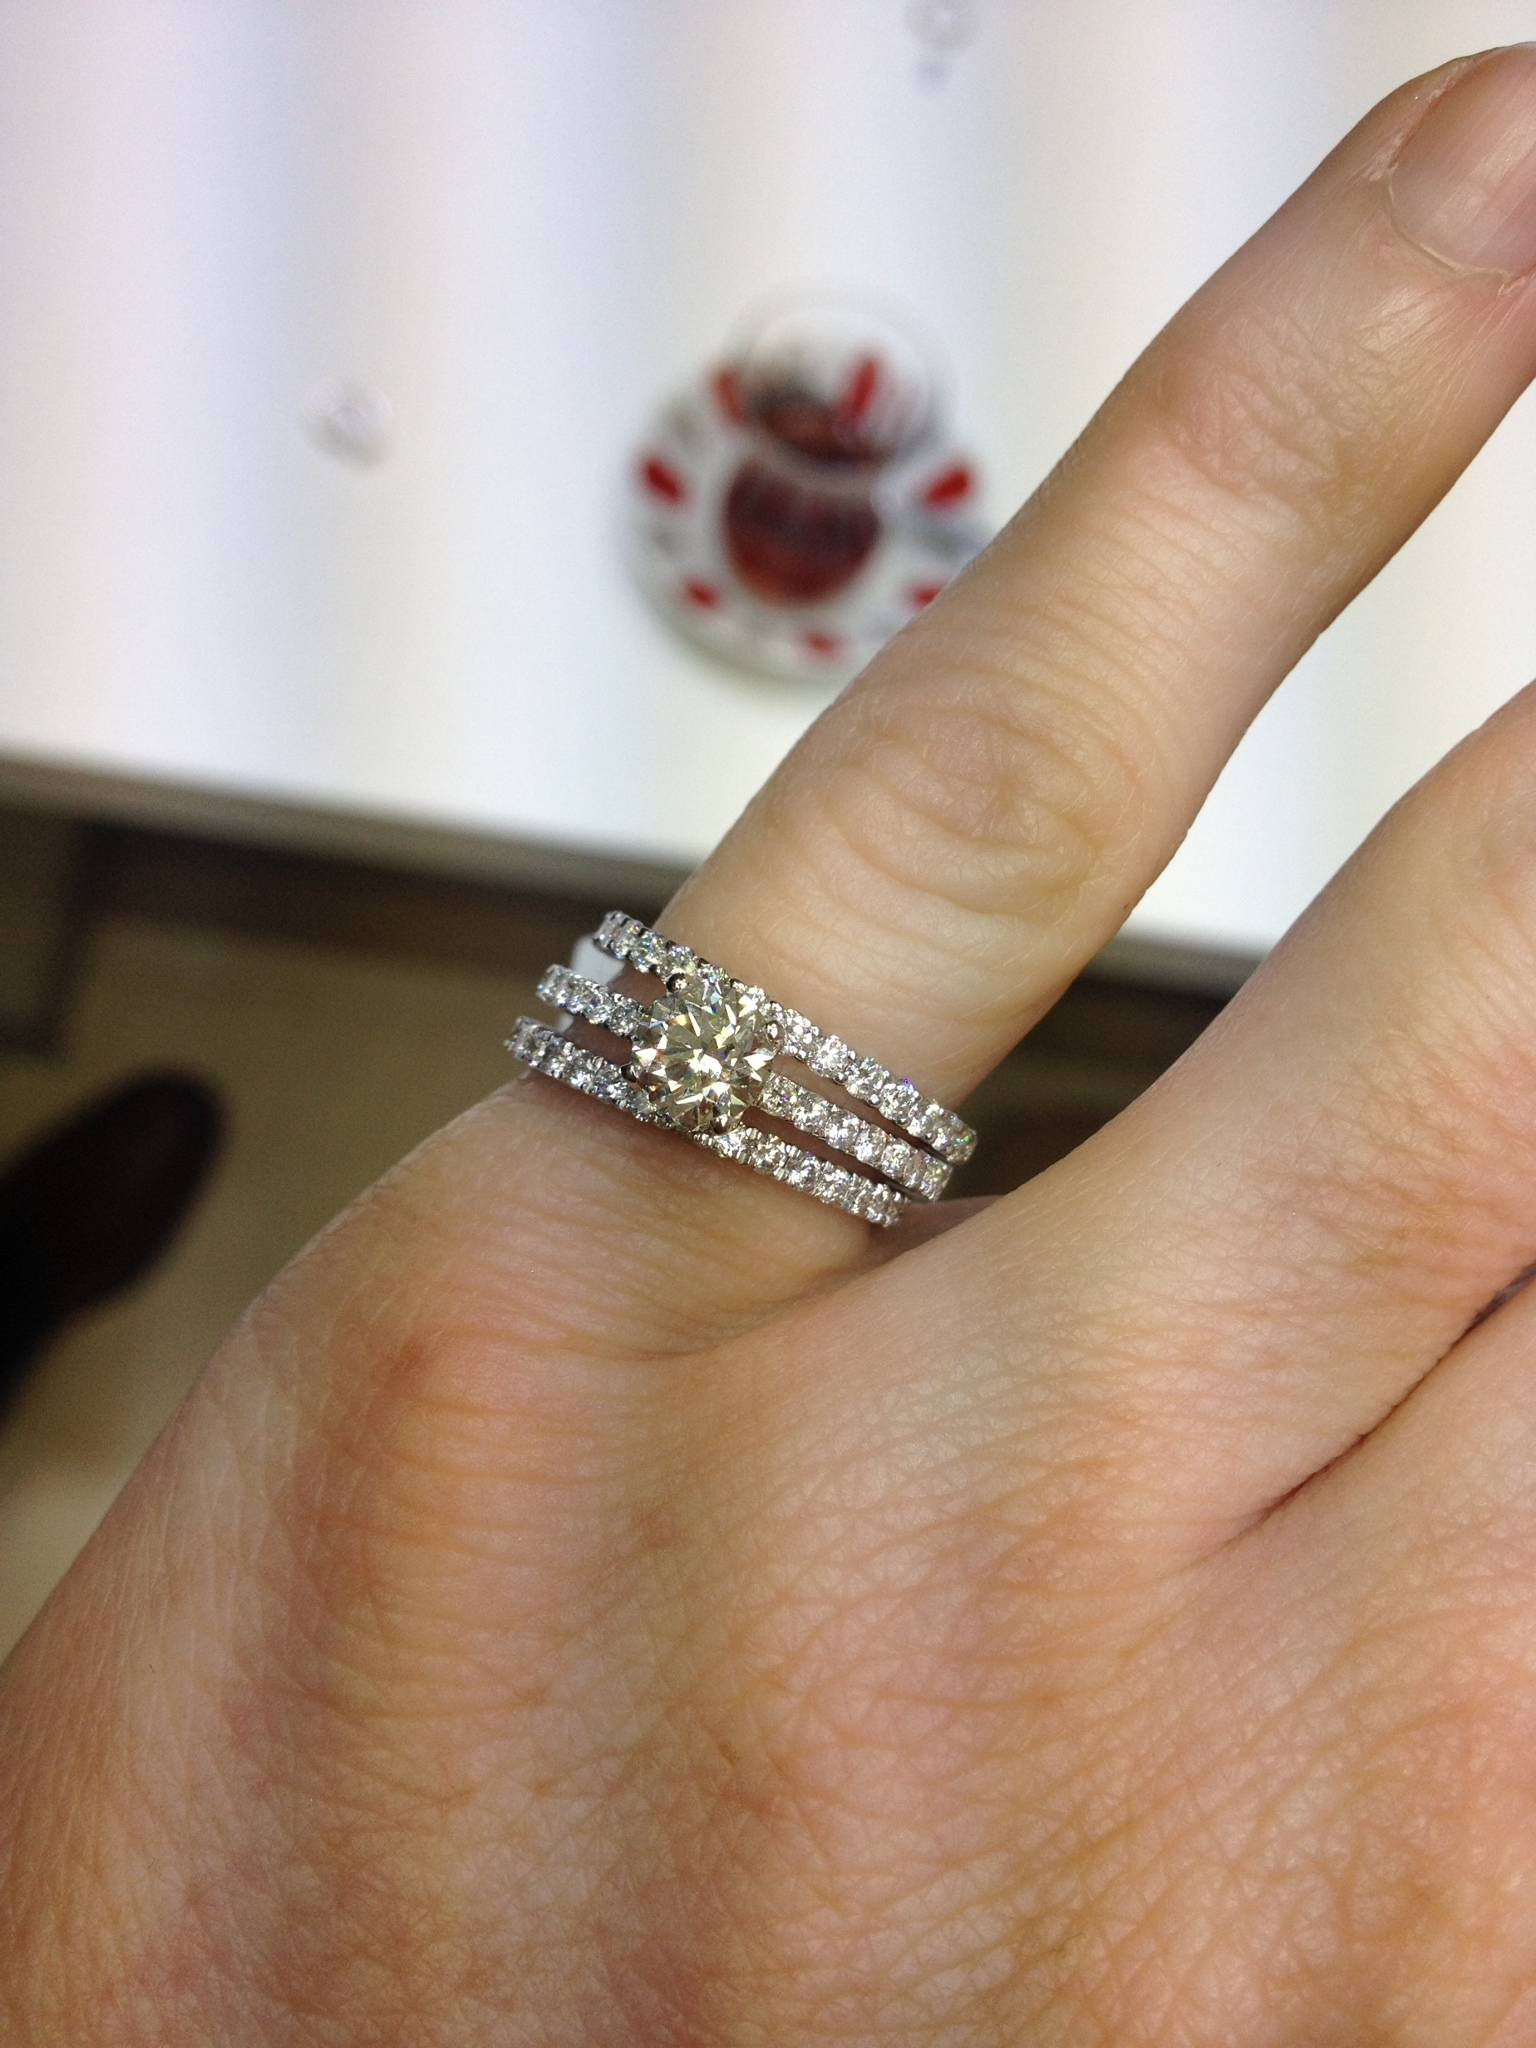 Cant Decide On Wedding Band! Show Me Thin Pave Erings With Intended For Most Recent Eternity Wedding Bands (Gallery 8 of 15)